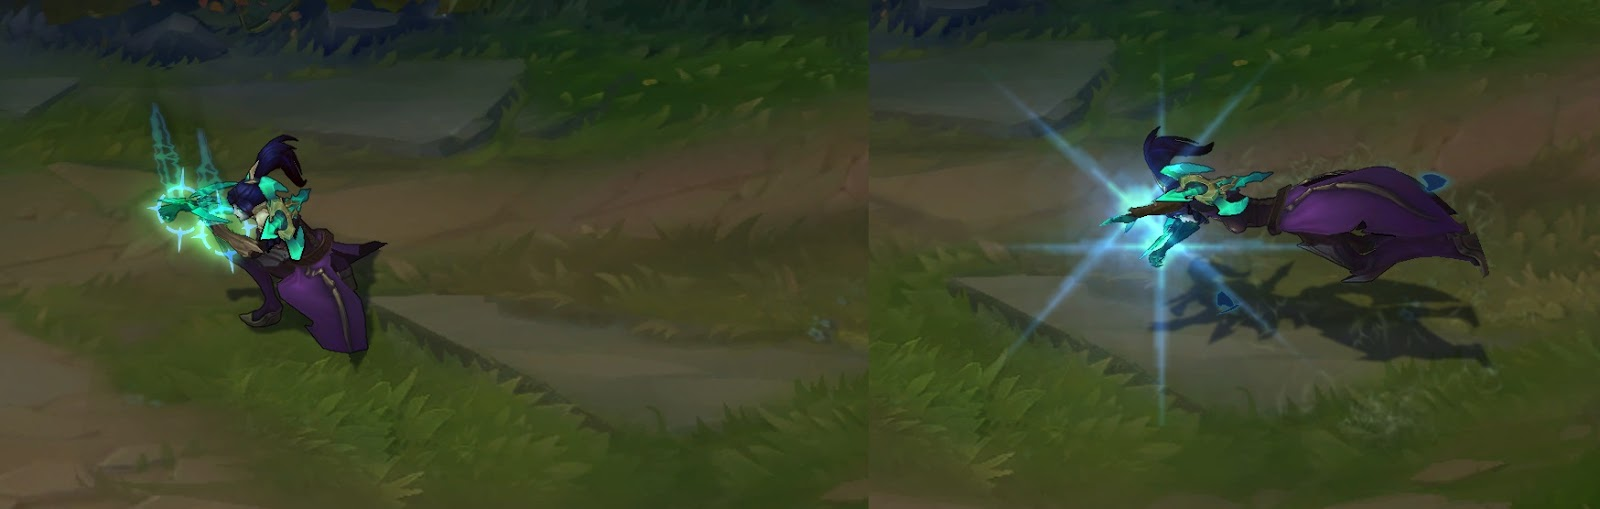 160616 08;08;36 Surrender at 20_ 6_14 PBE Update_ Soulstealer 007